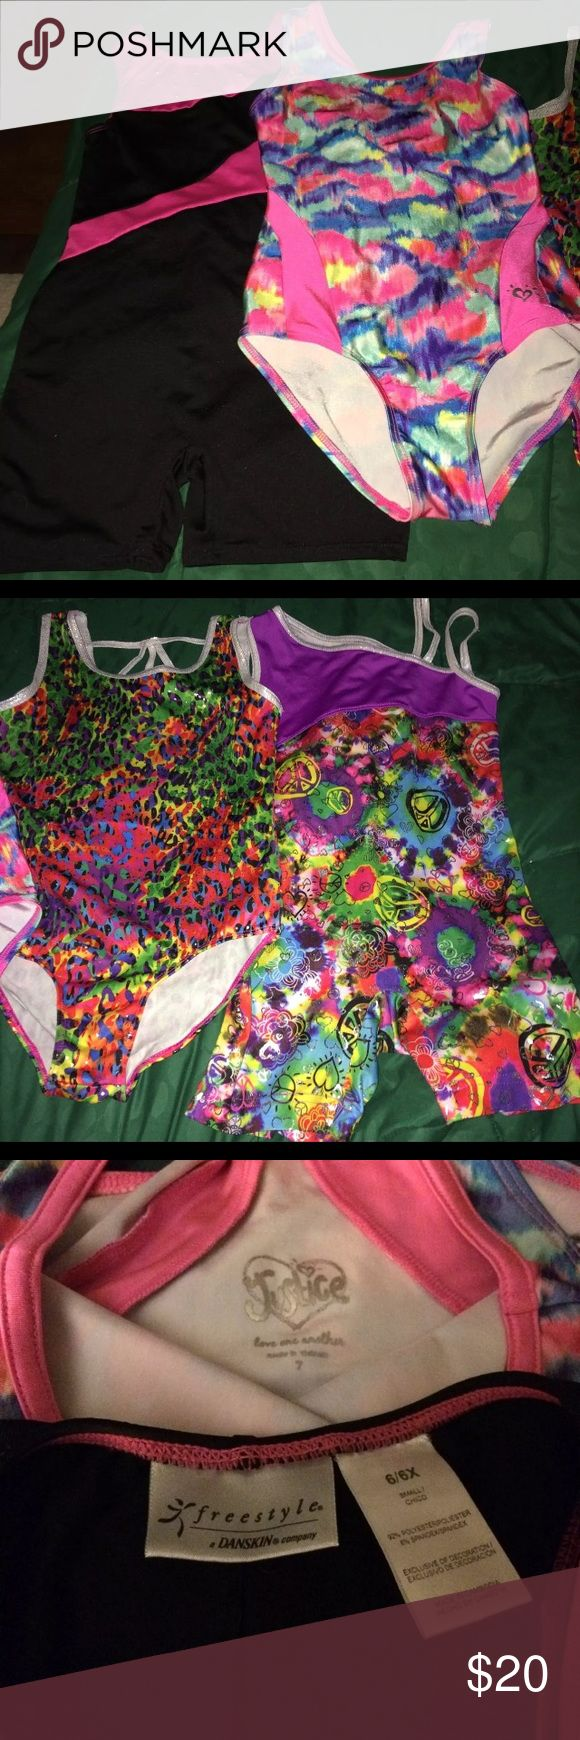 4 Different Girls Gymnastics Body Suits 4 different Girl's gymnastics body suits. Only worn for 6 months once a week to gymnastics classes. Three of the suits are Danskin and one of the suits are Justice. Sizes range from 6x -7. Smoke free home. No flaws and no stains. Danskin Now One Pieces Bodysuits